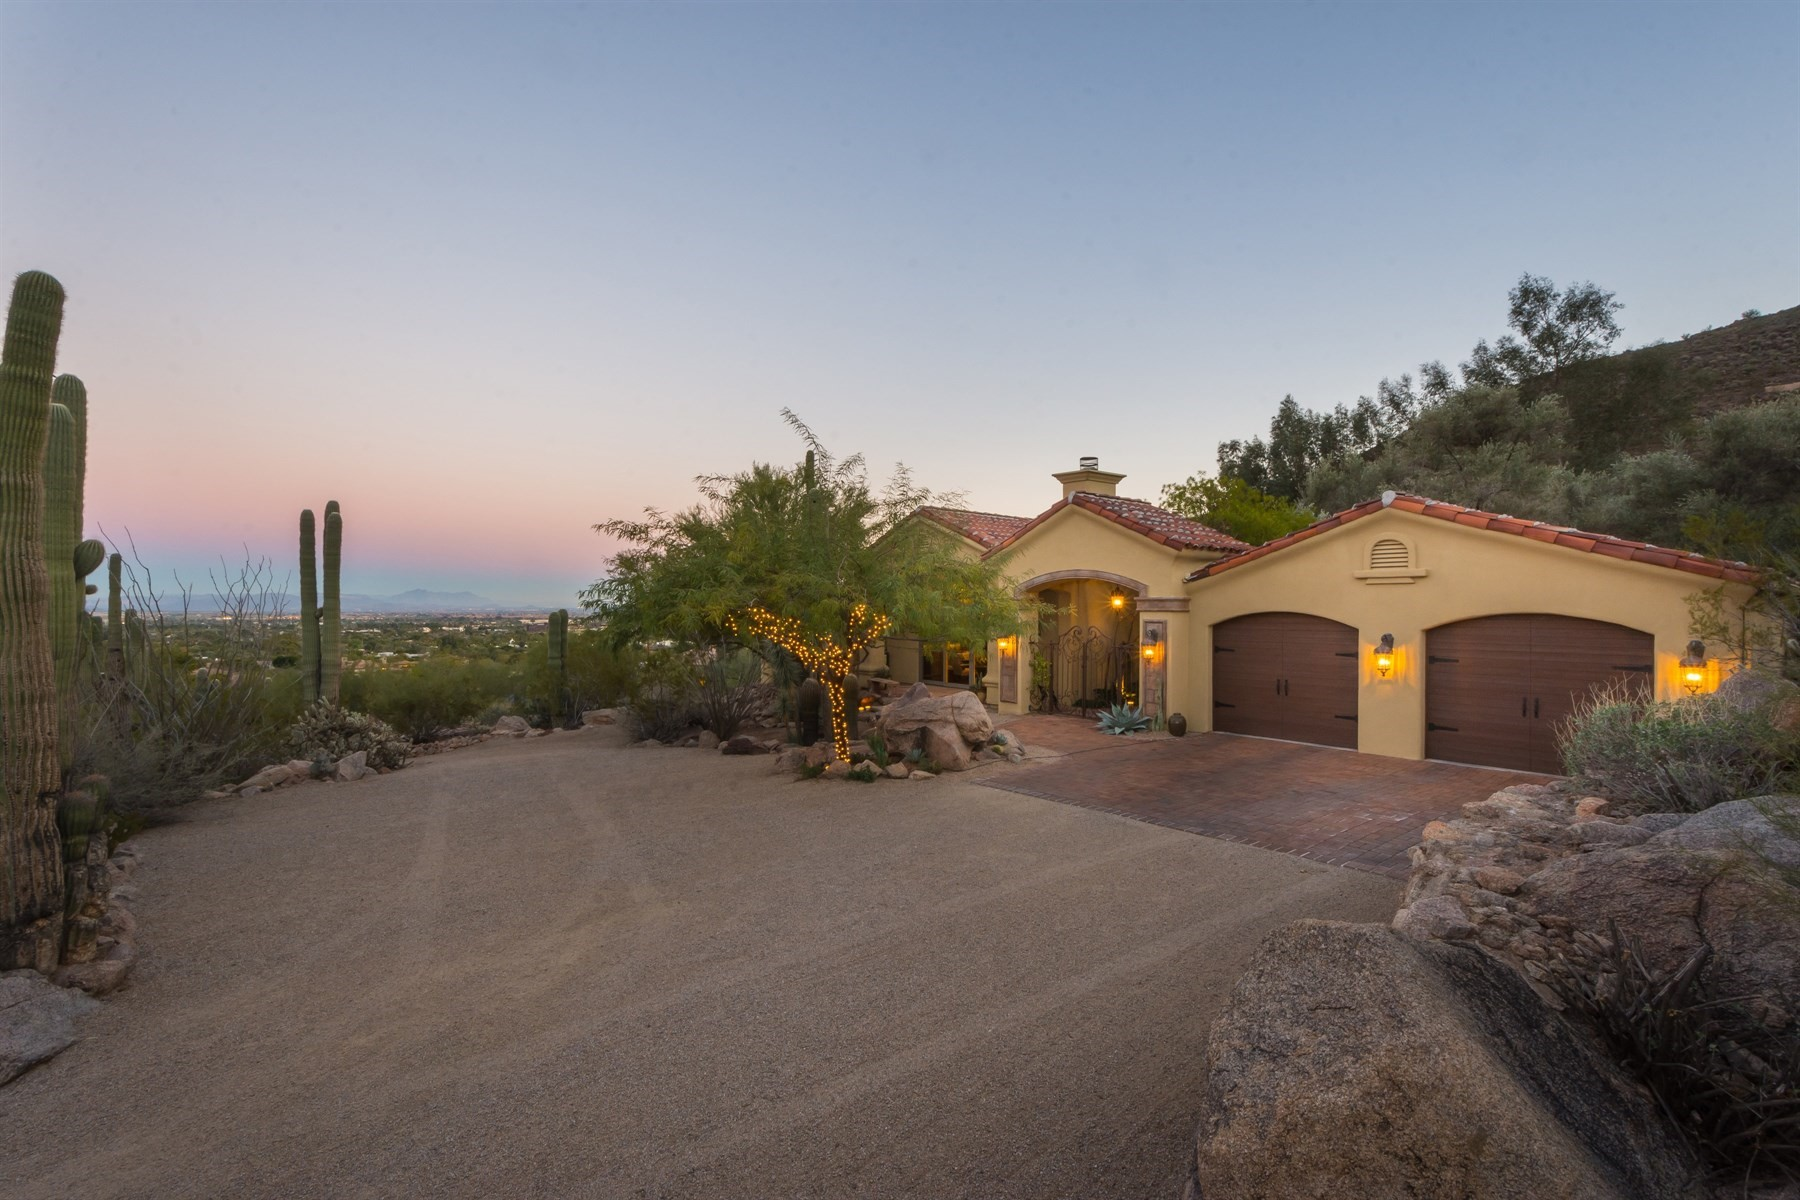 Casa Unifamiliar por un Venta en Beautiful Paradise Valley home with incredible views 6101 E Cholla Ln Paradise Valley, Arizona, 85253 Estados Unidos